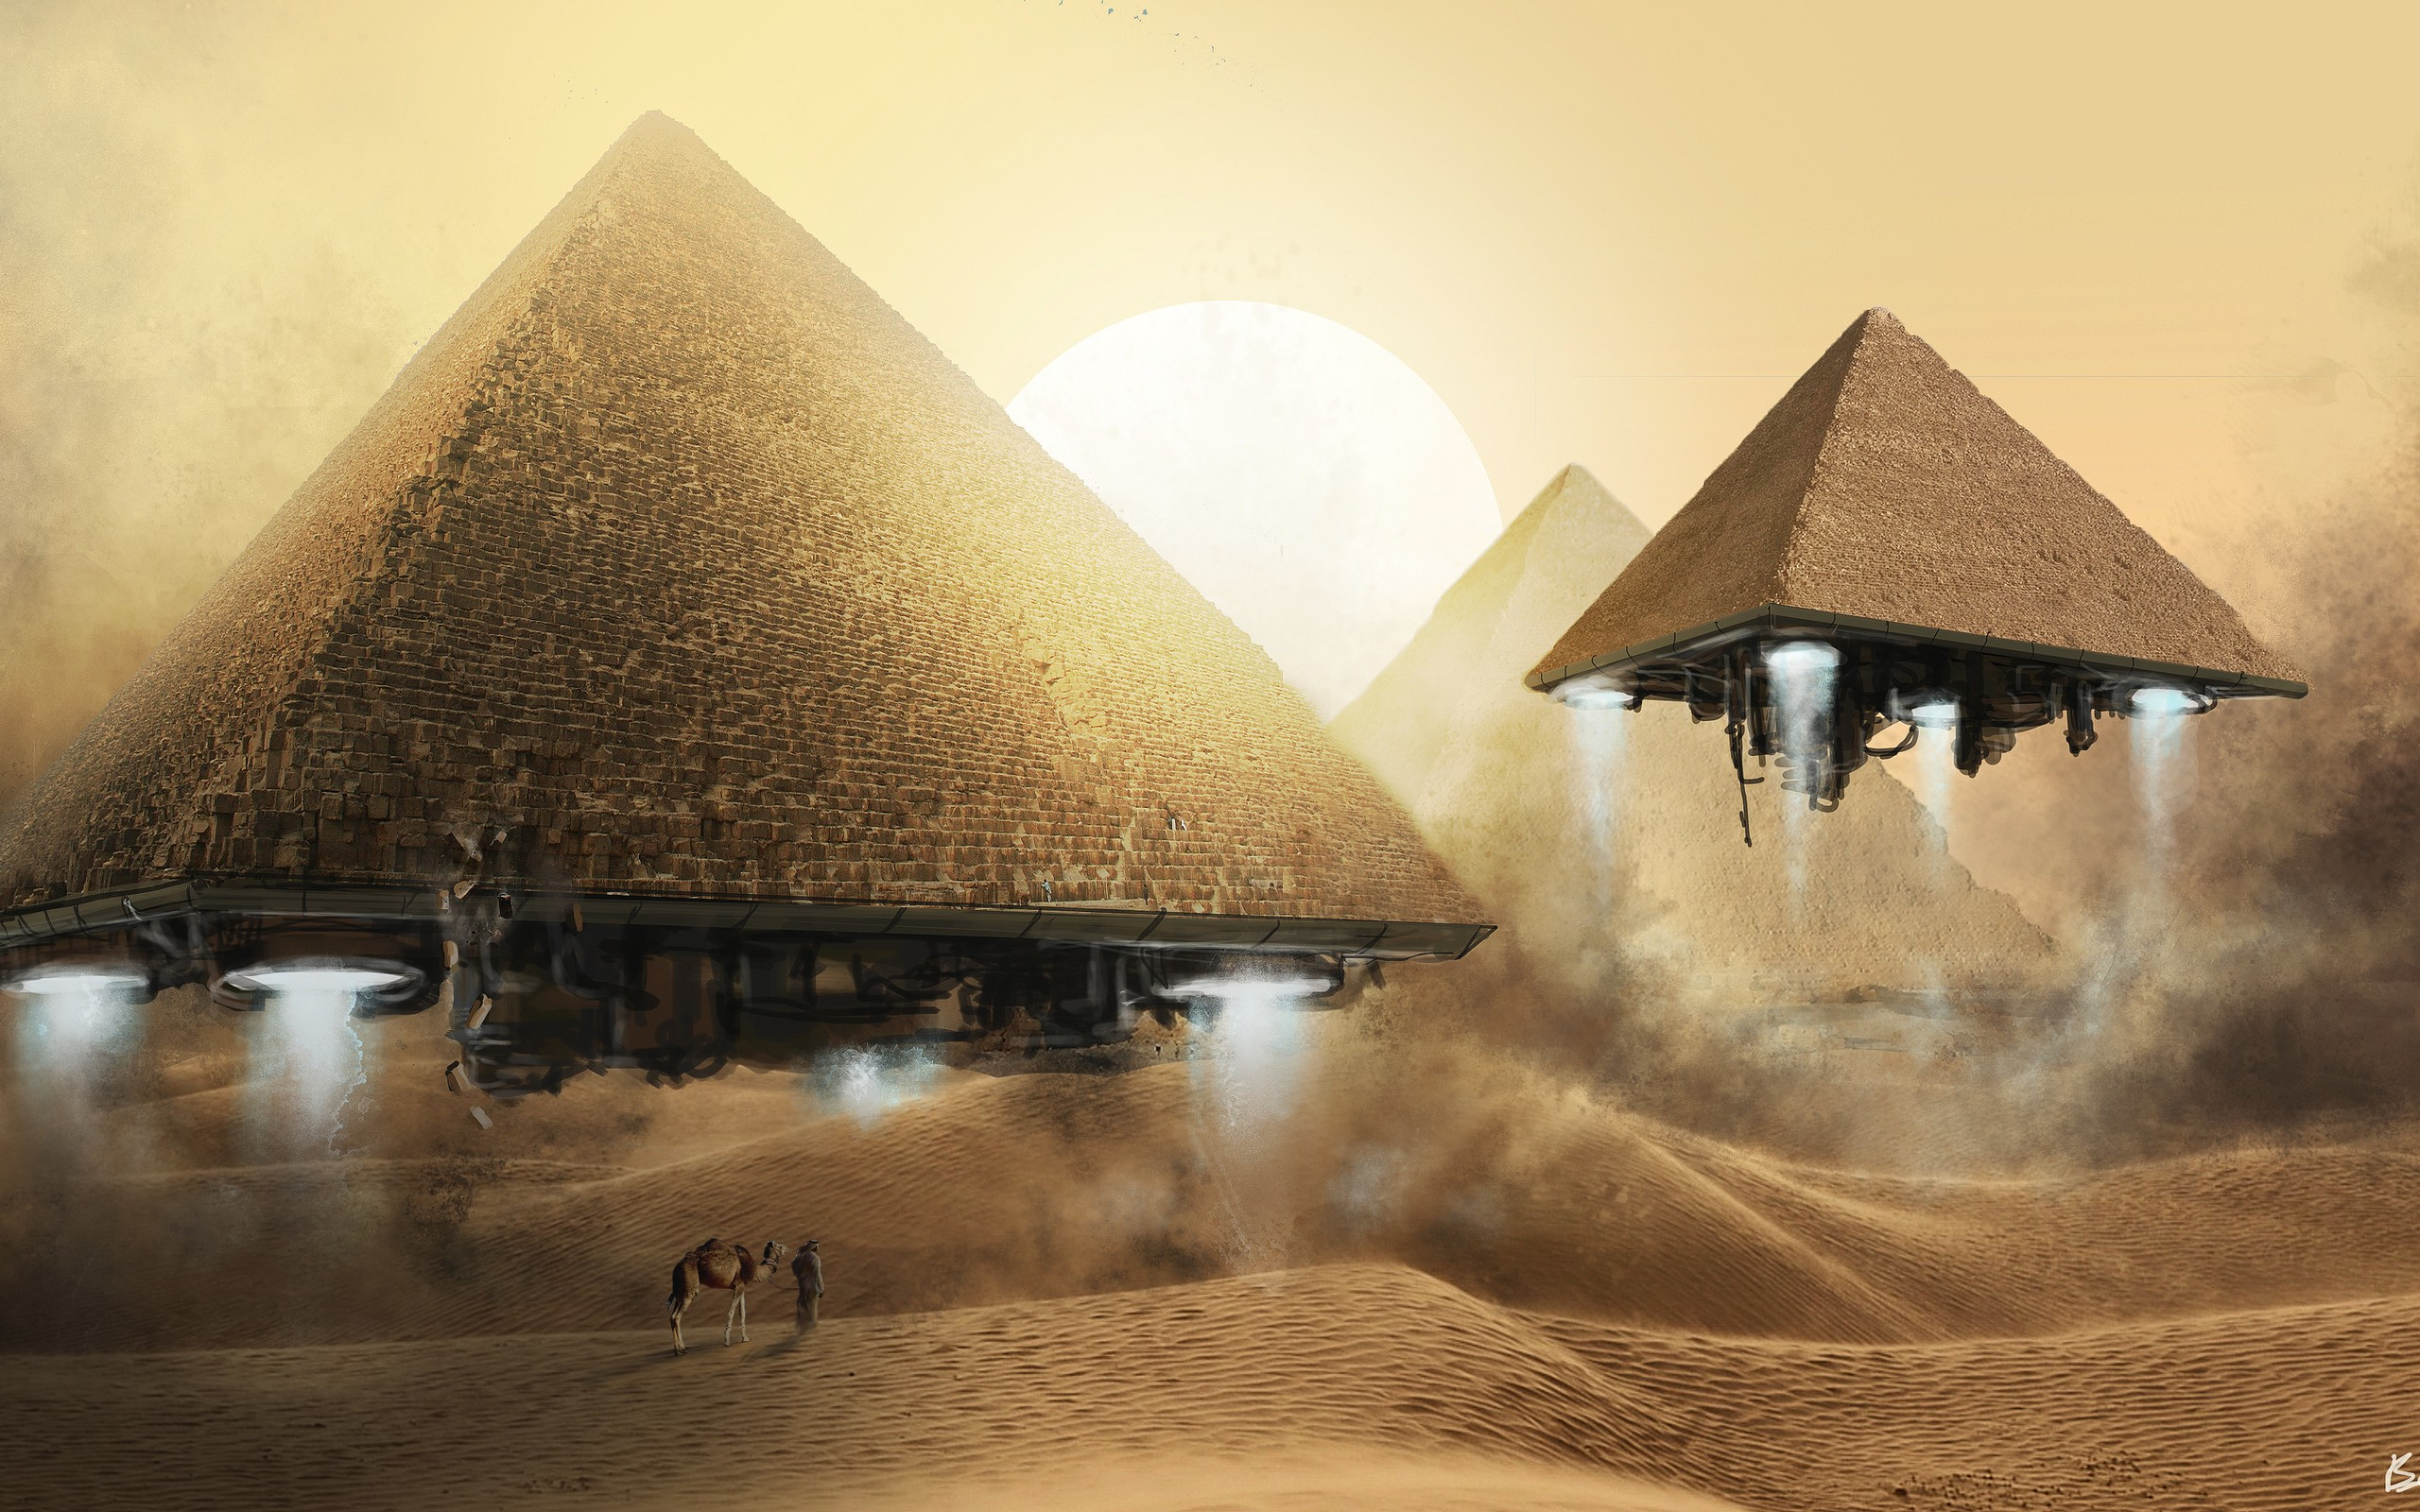 creative_wallpaper_flying_pyramids_035386_